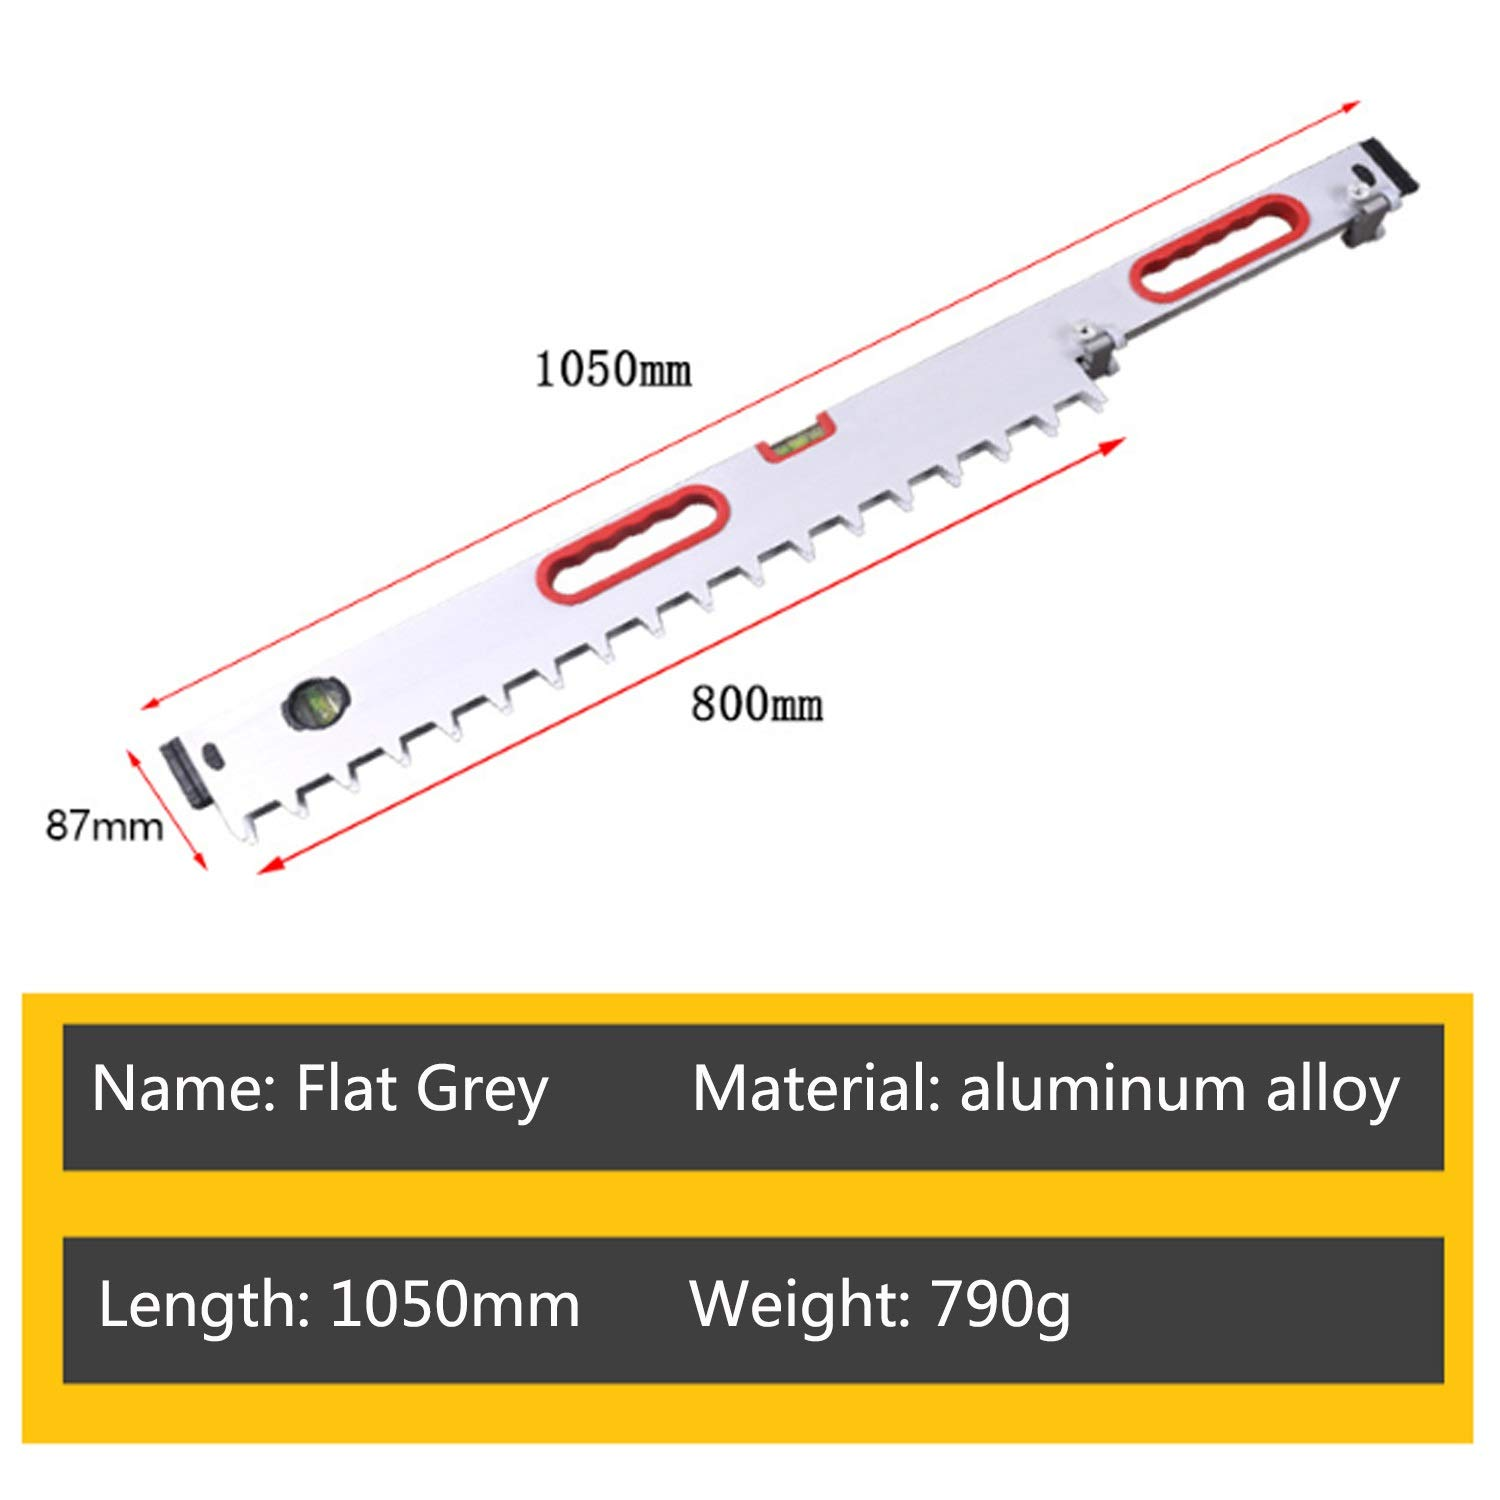 Your only family Practical New Tile Leveler Leveling Ash Leveler Paving Tile Tools Easy to Operate Saves Time and Effort Tile Leveling System High Precision Durable (Size : A5A02)